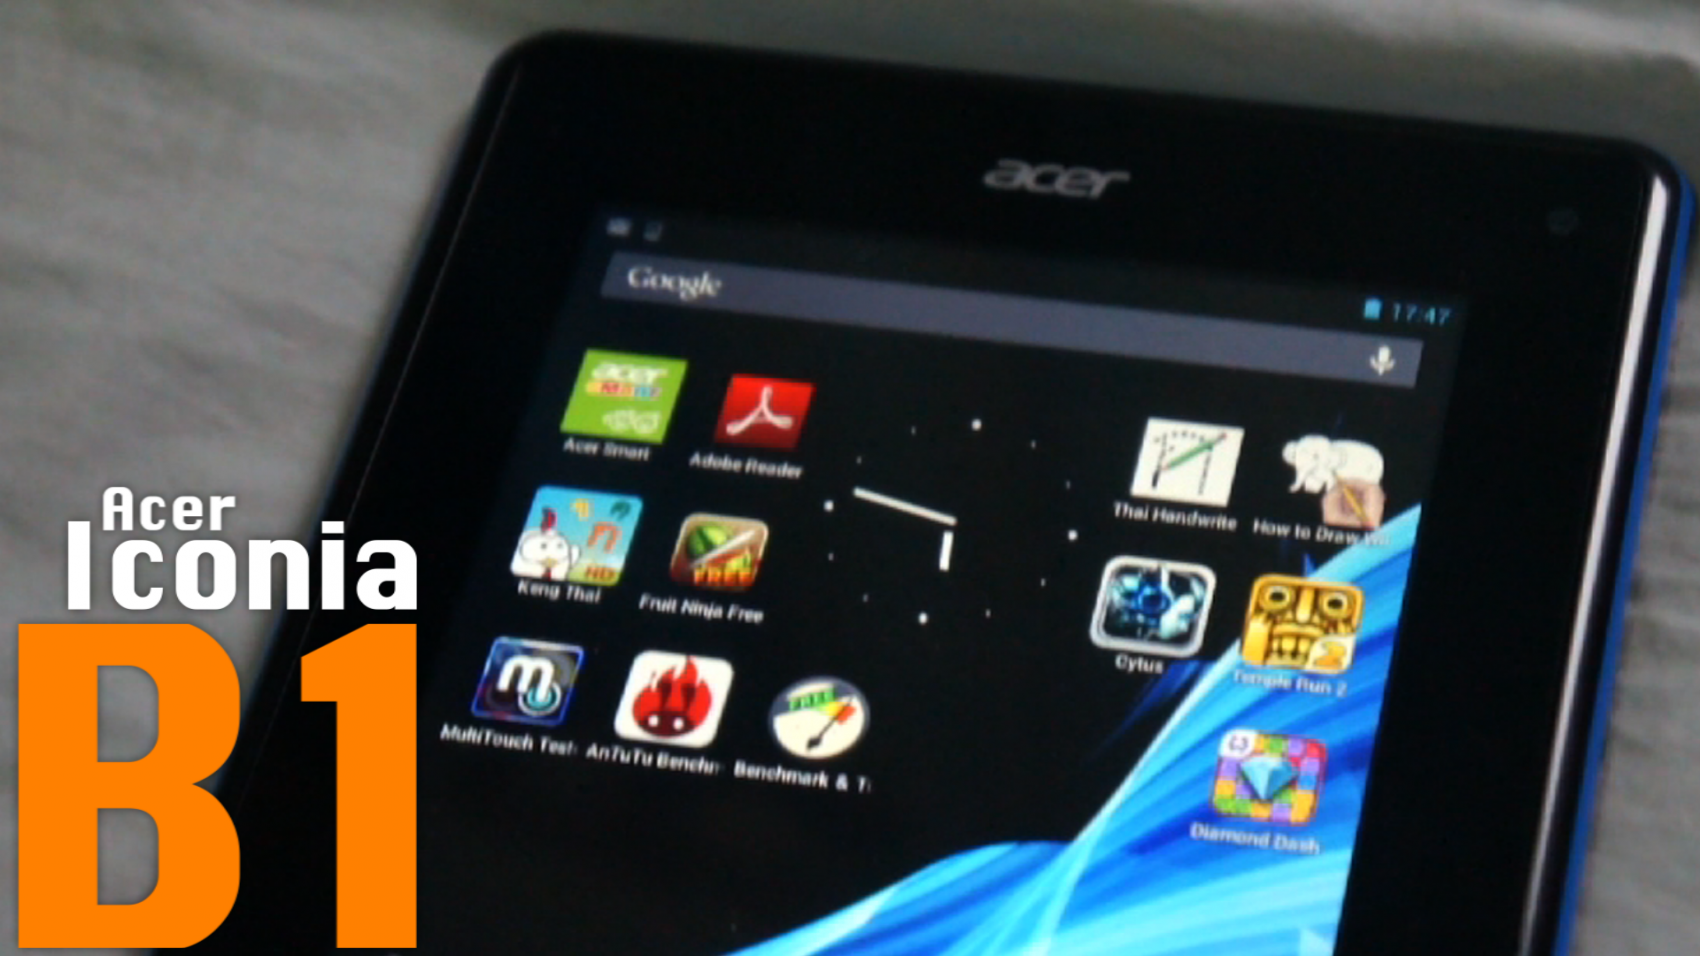 Power ON #046 : Acer Iconia B1